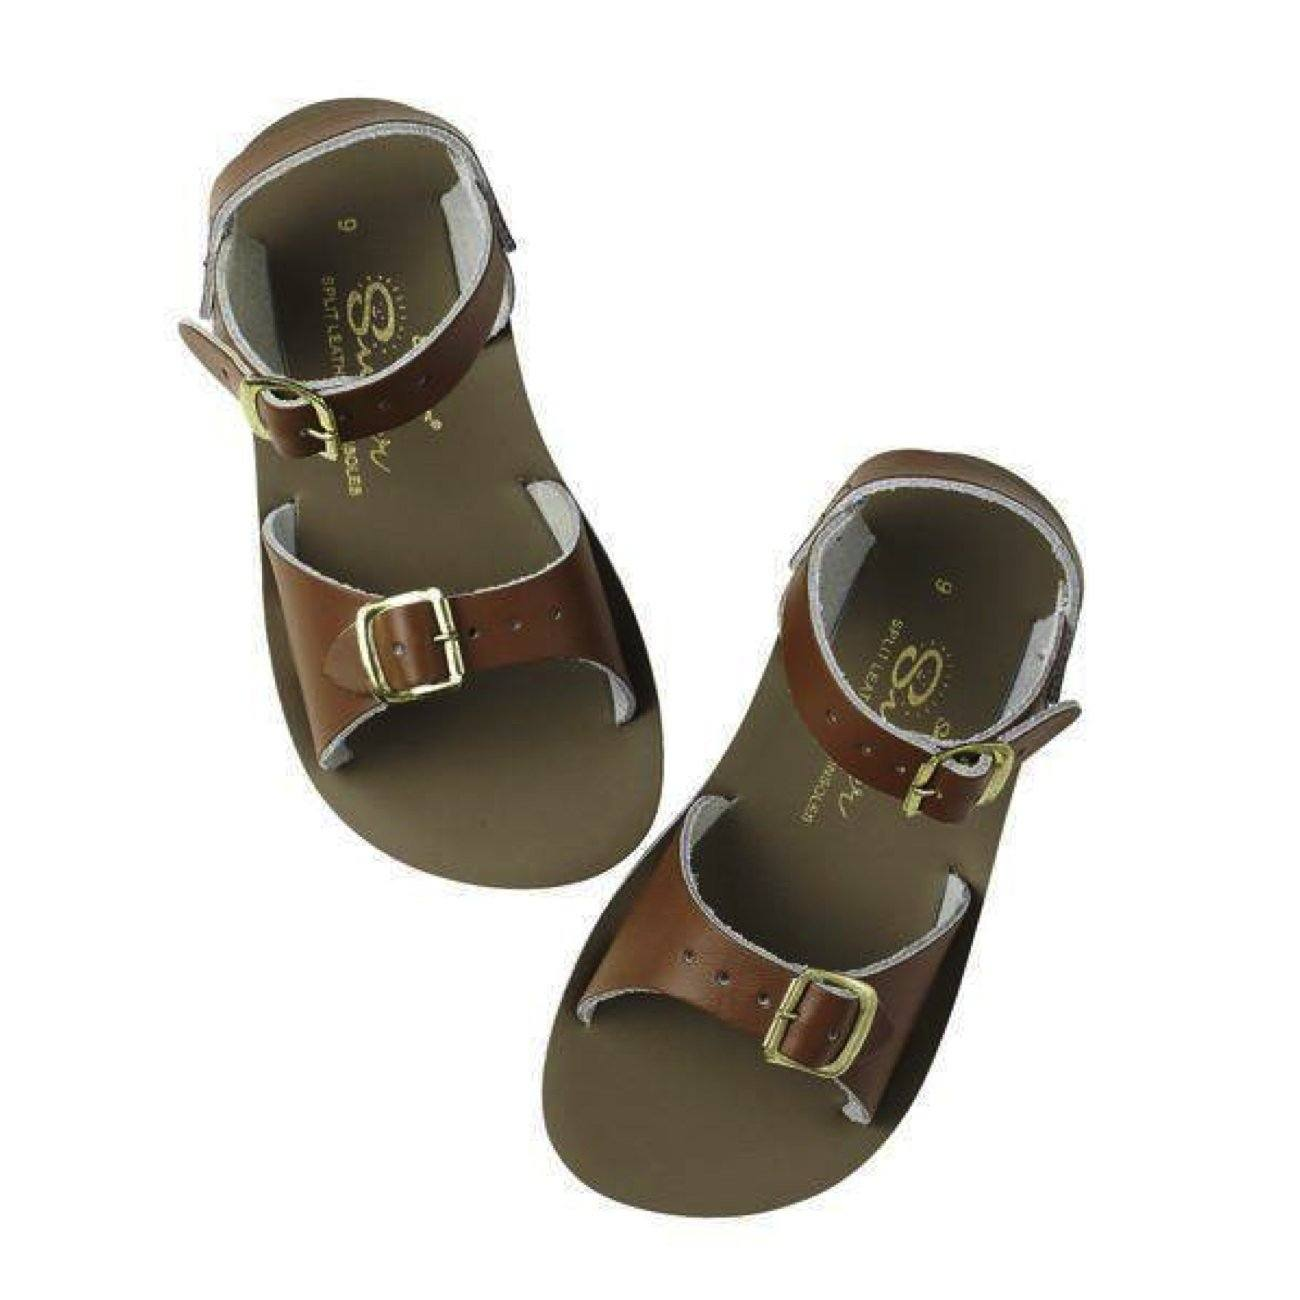 Salt Water Sandals, Sun-San Surfer, Child, Tan Sandals Salt Water Sandals Tan Child 10